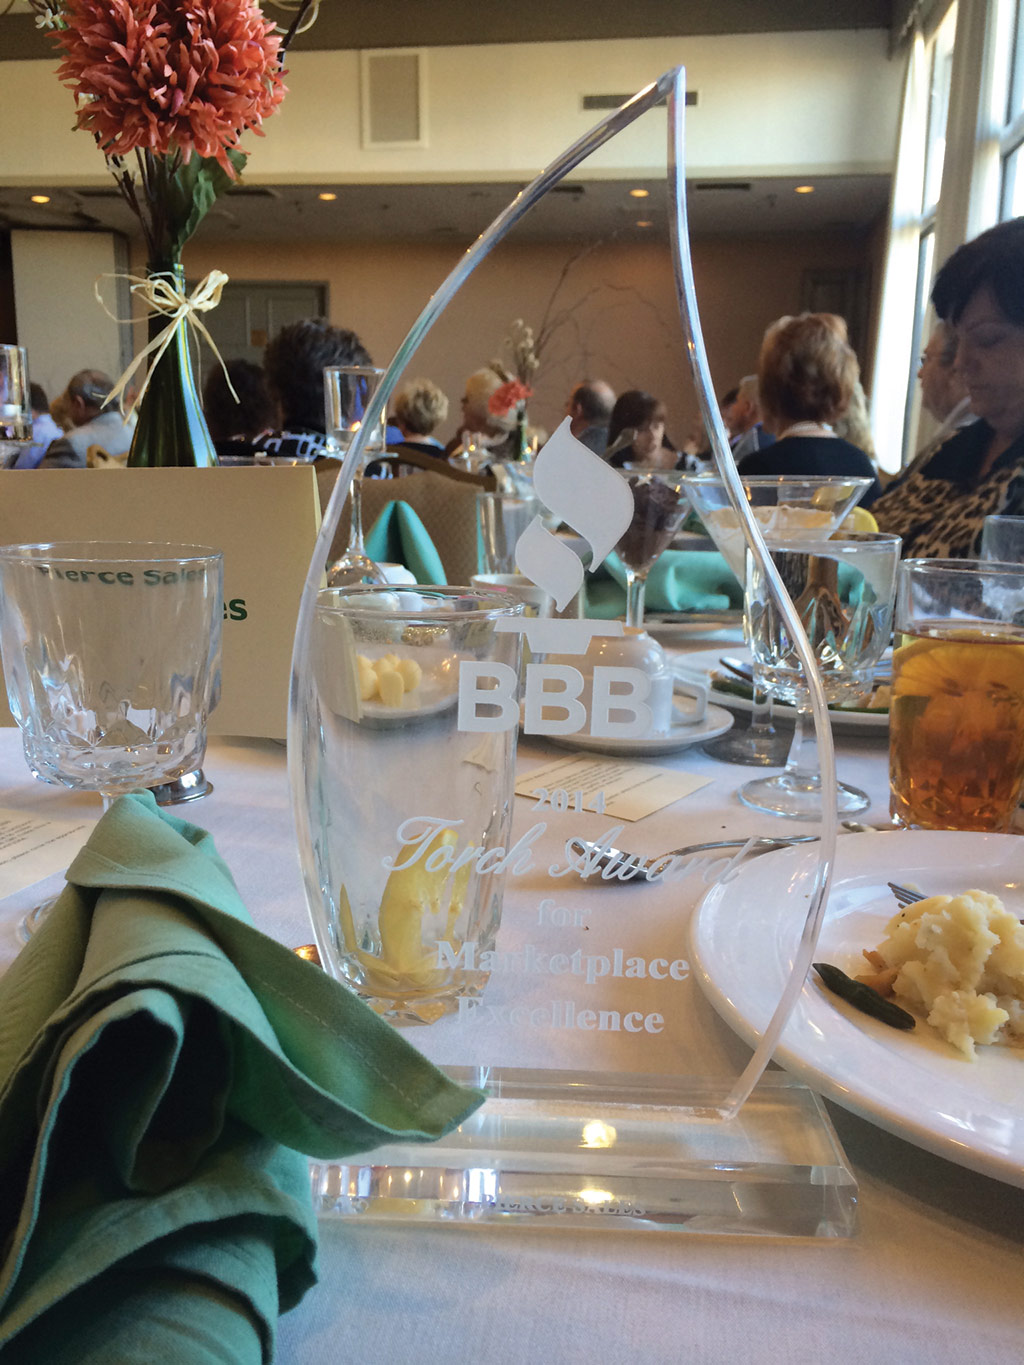 Pierce Sales Grabs the 2014 BBB Torch Awards